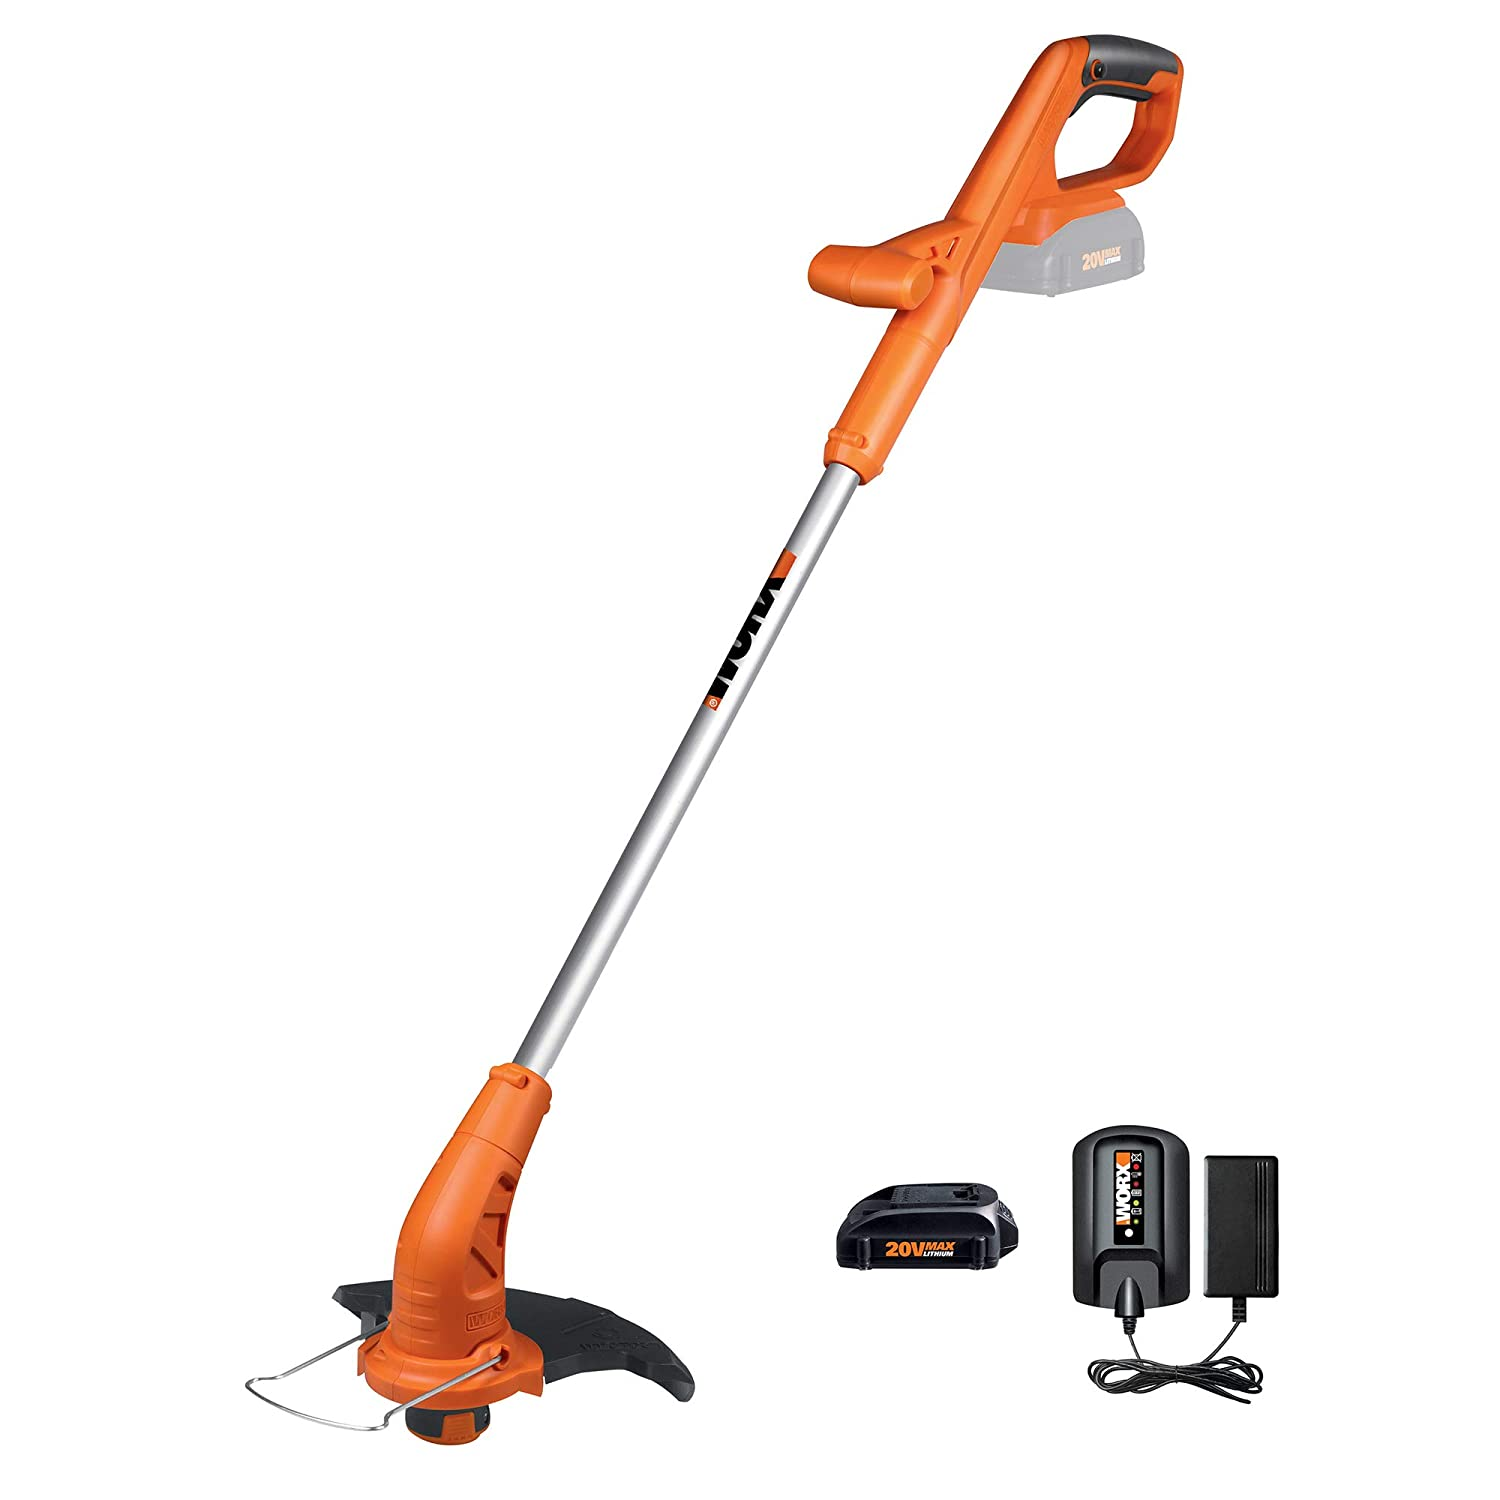 WORX WG154 Edger Cordless Weed Eater Trimmer